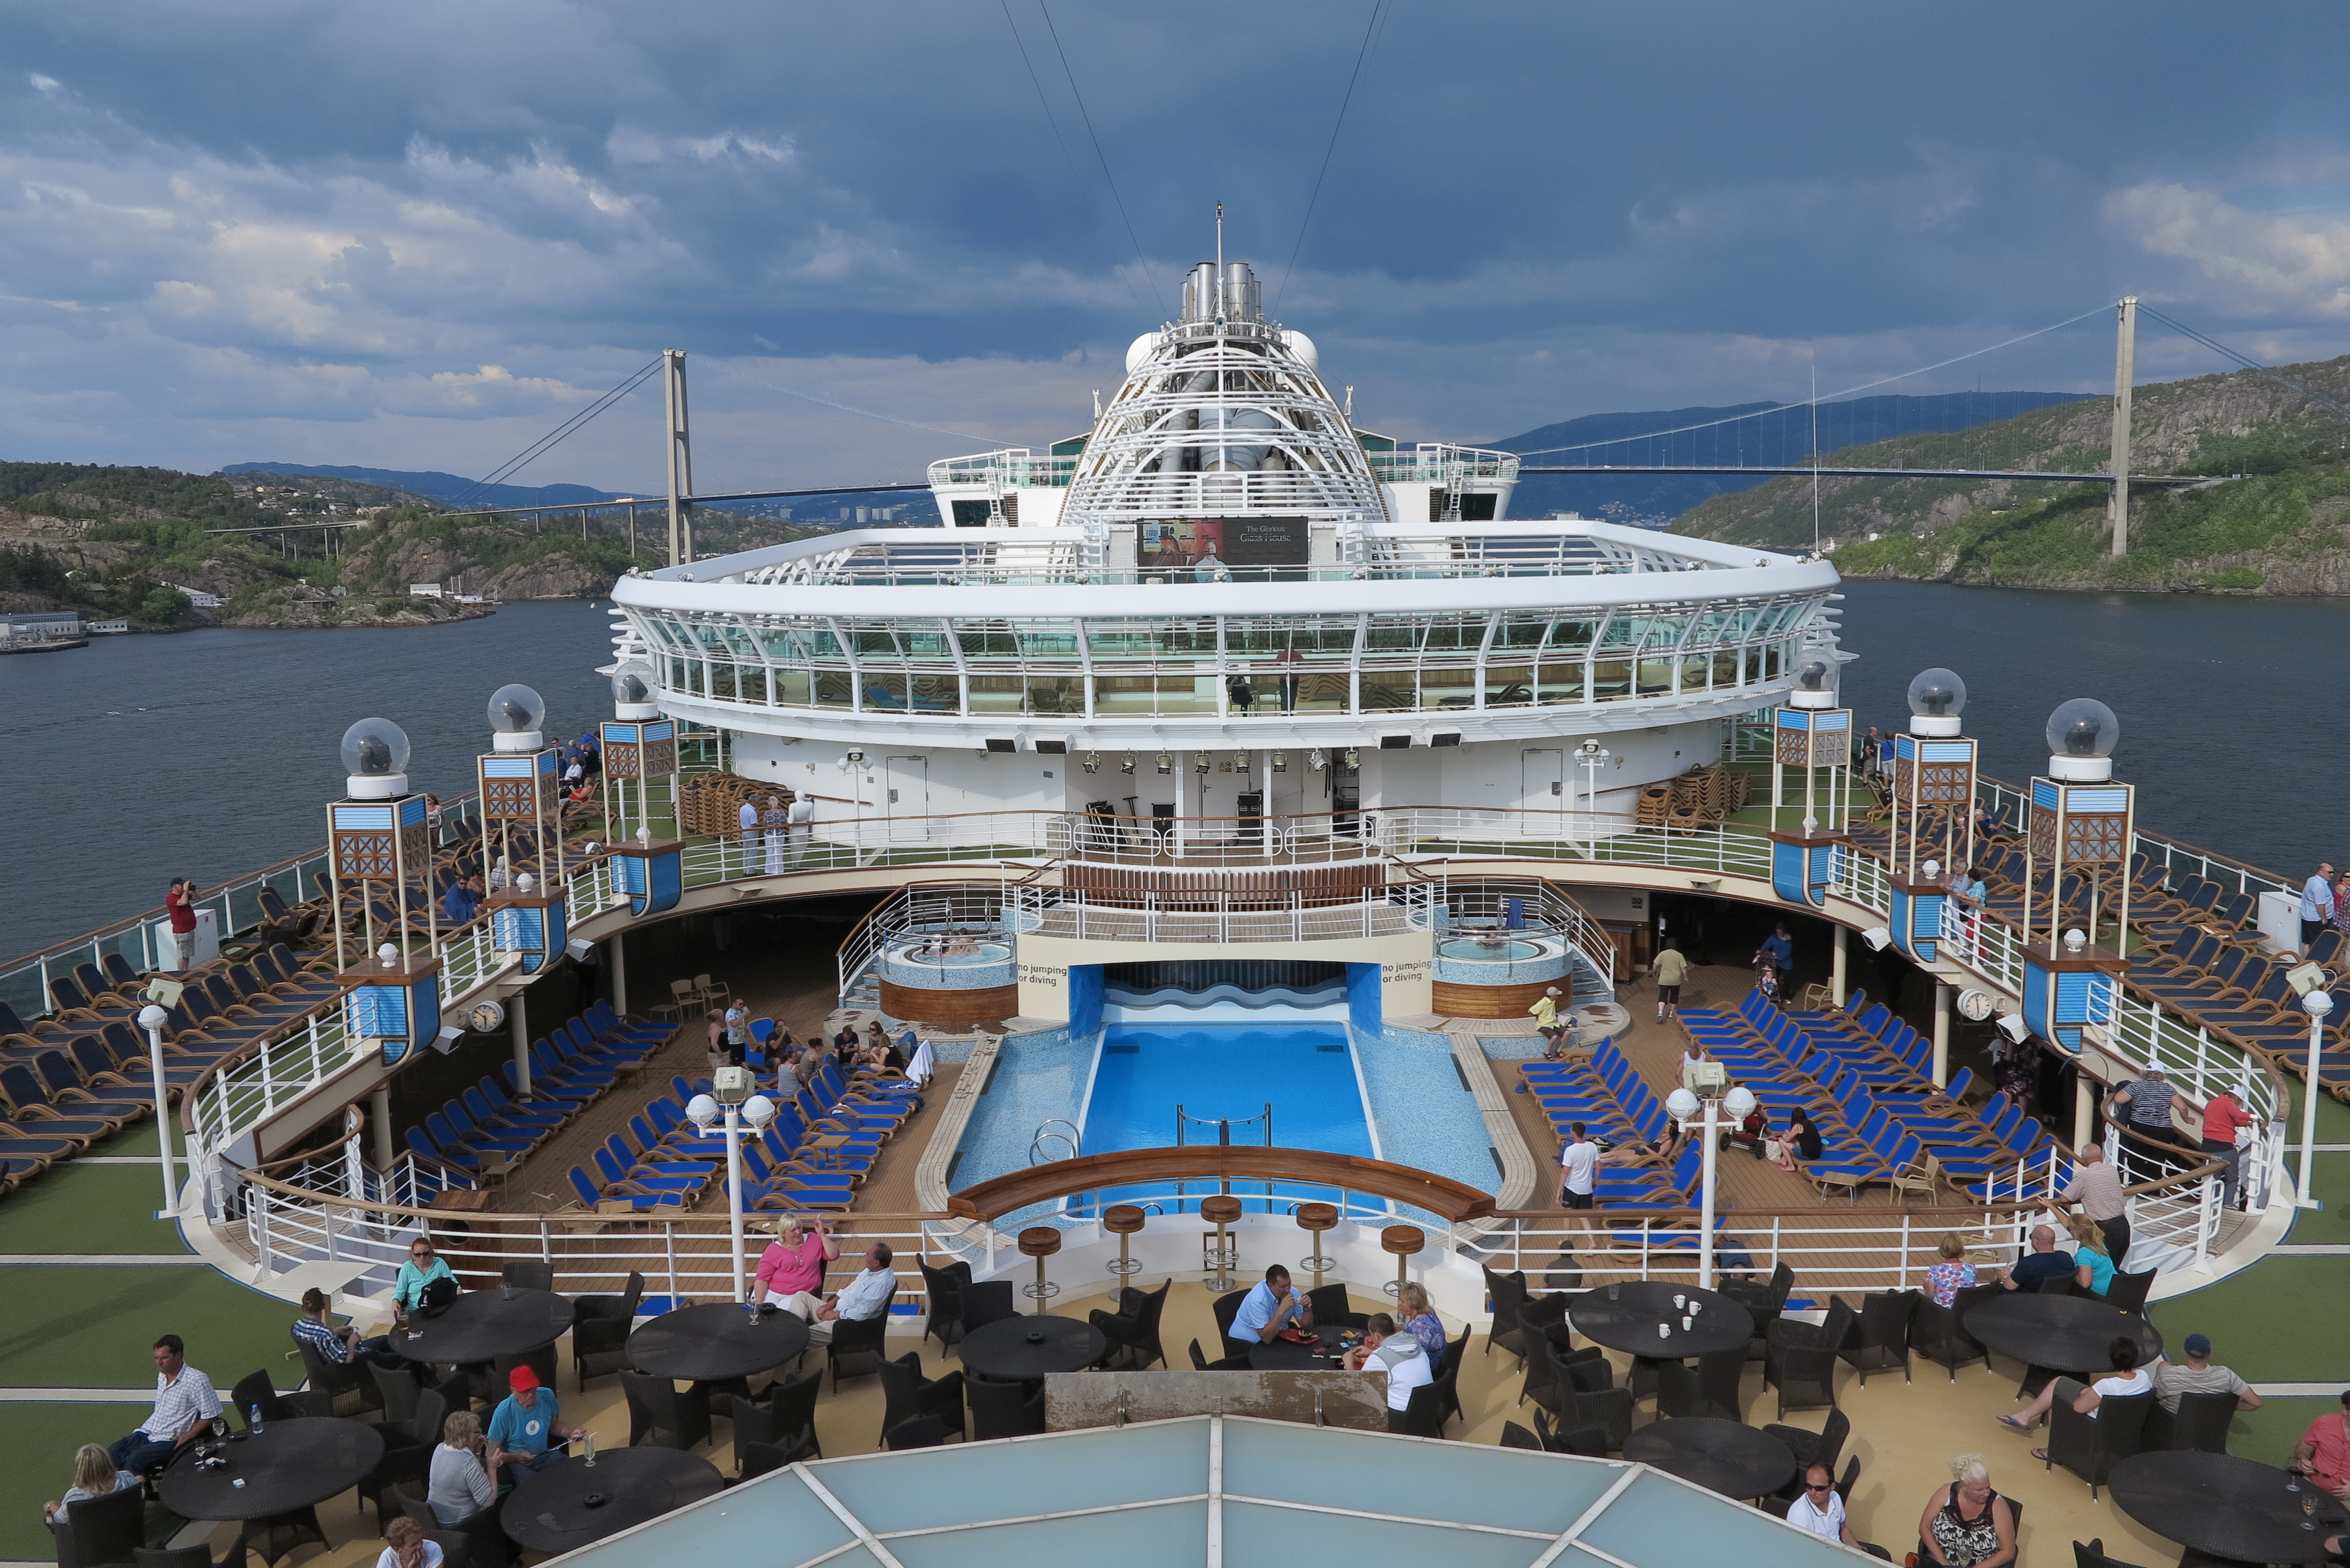 Bergen and ships: Azura sails away from our first port of call